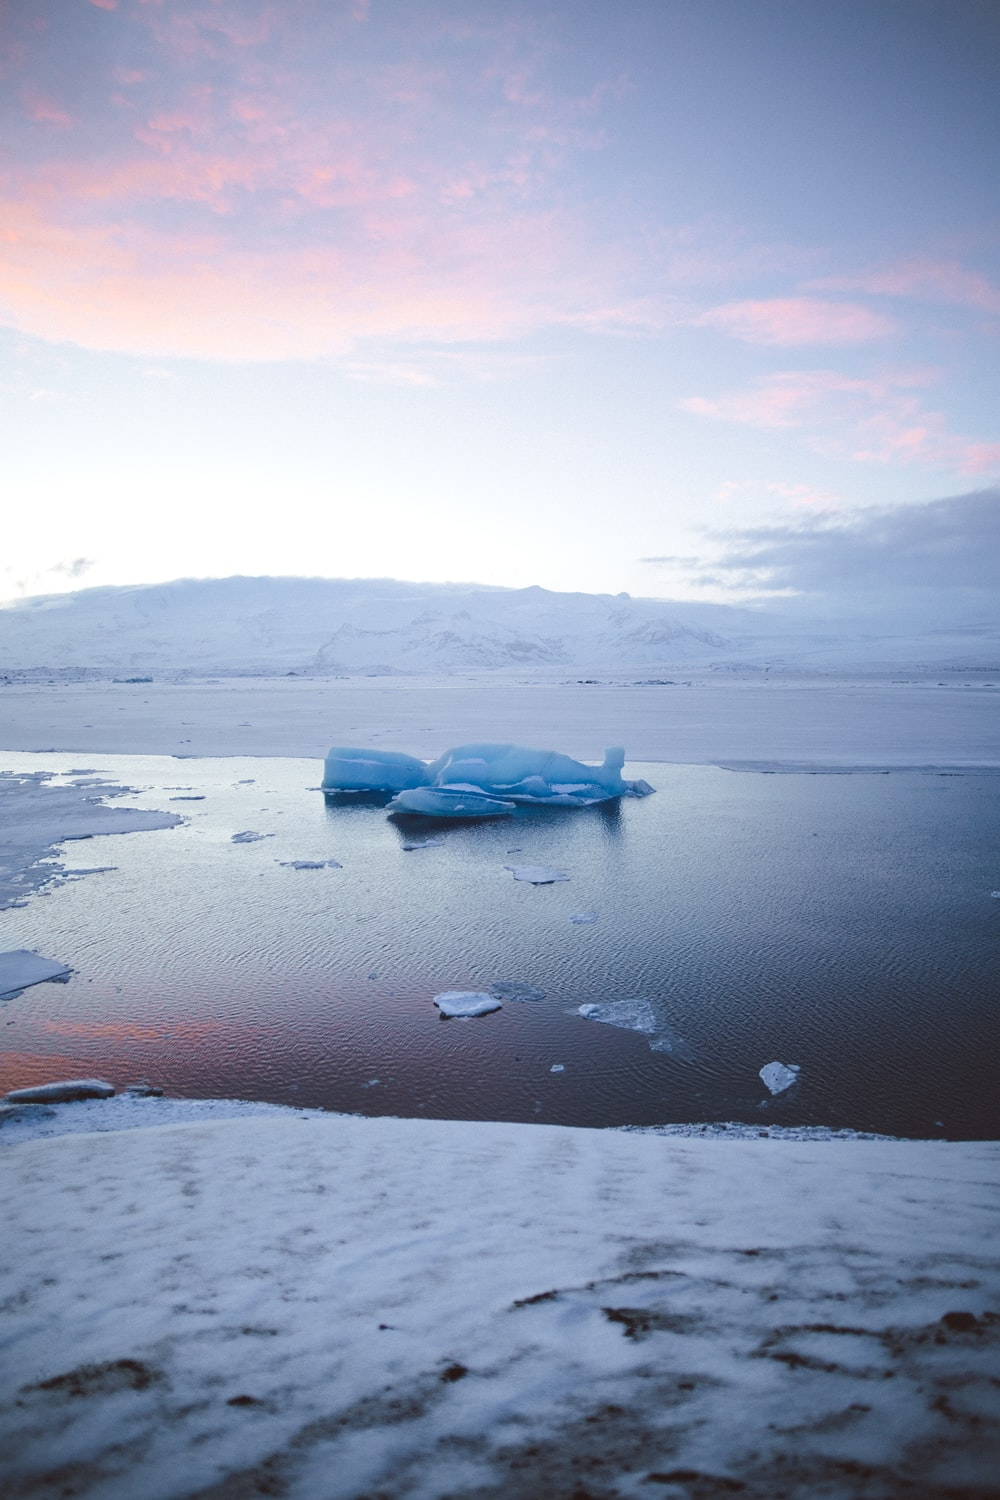 iceberg floating on water under blue and pink sky